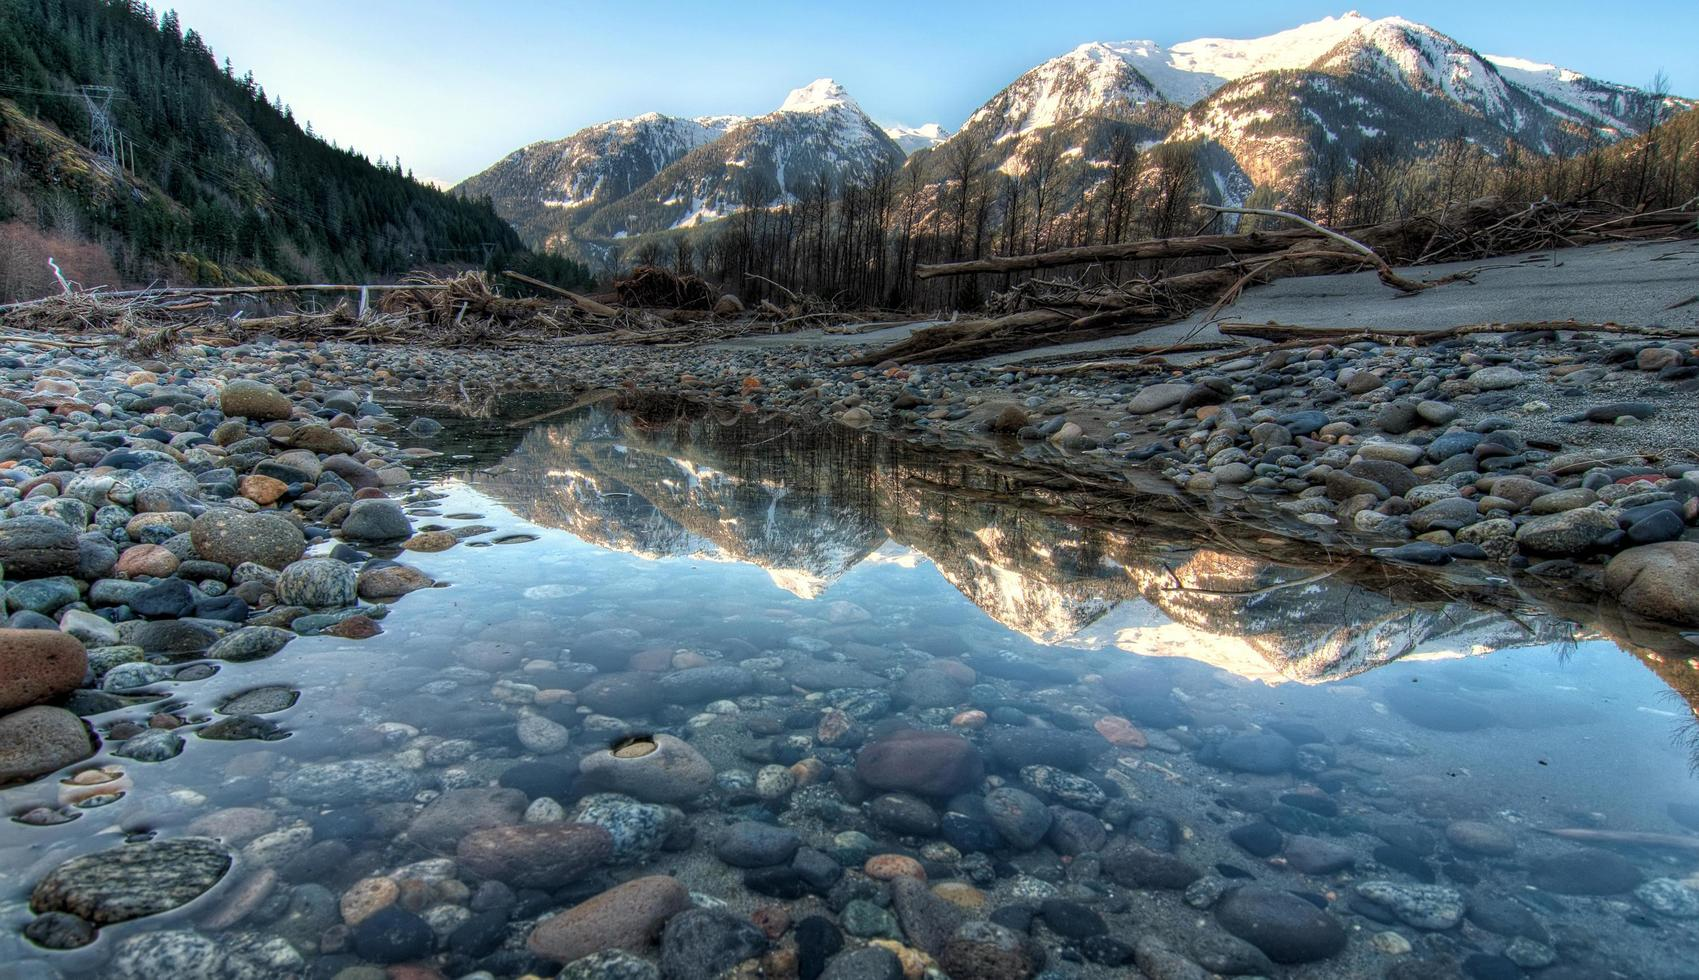 Reflection of mountains in water photo